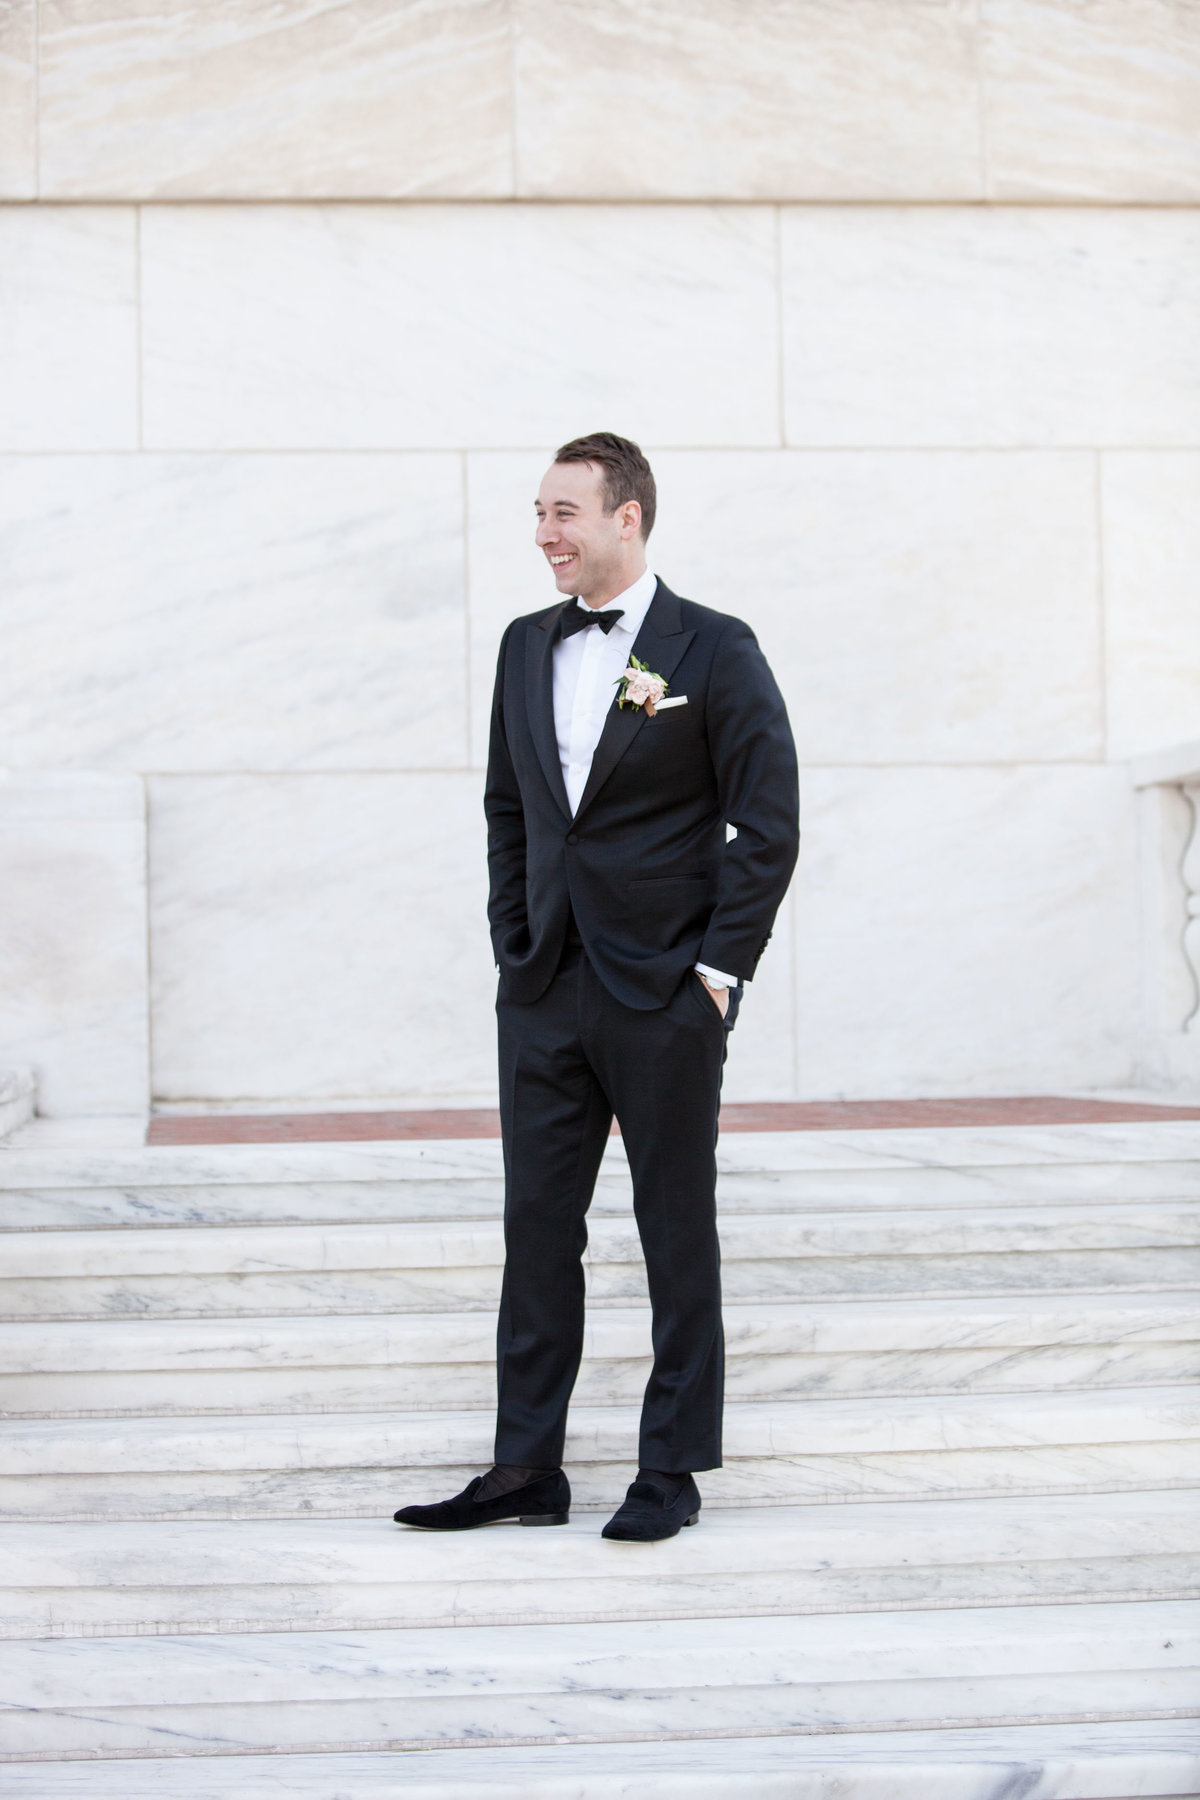 Cottrell Wedding - Natalie Probst Photography538